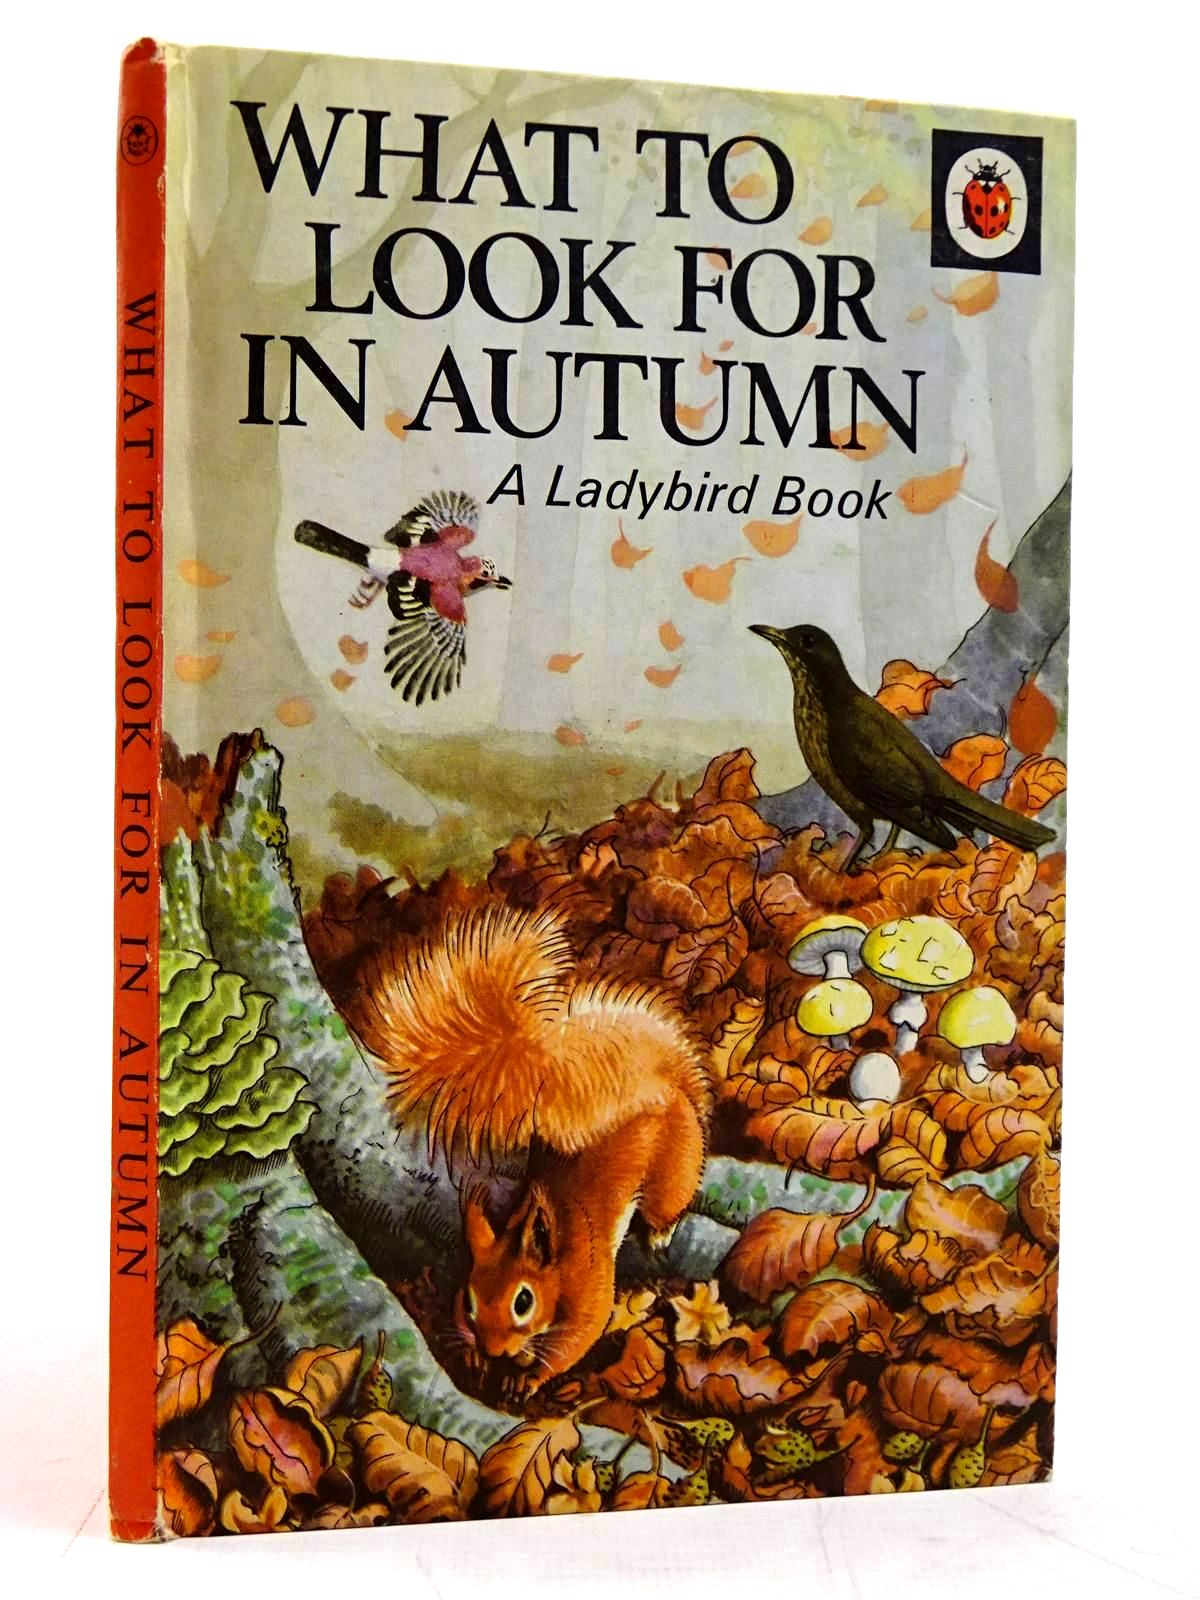 Photo of WHAT TO LOOK FOR IN AUTUMN written by Watson, E.L. Grant illustrated by Tunnicliffe, C.F. published by Wills & Hepworth Ltd. (STOCK CODE: 2131530)  for sale by Stella & Rose's Books